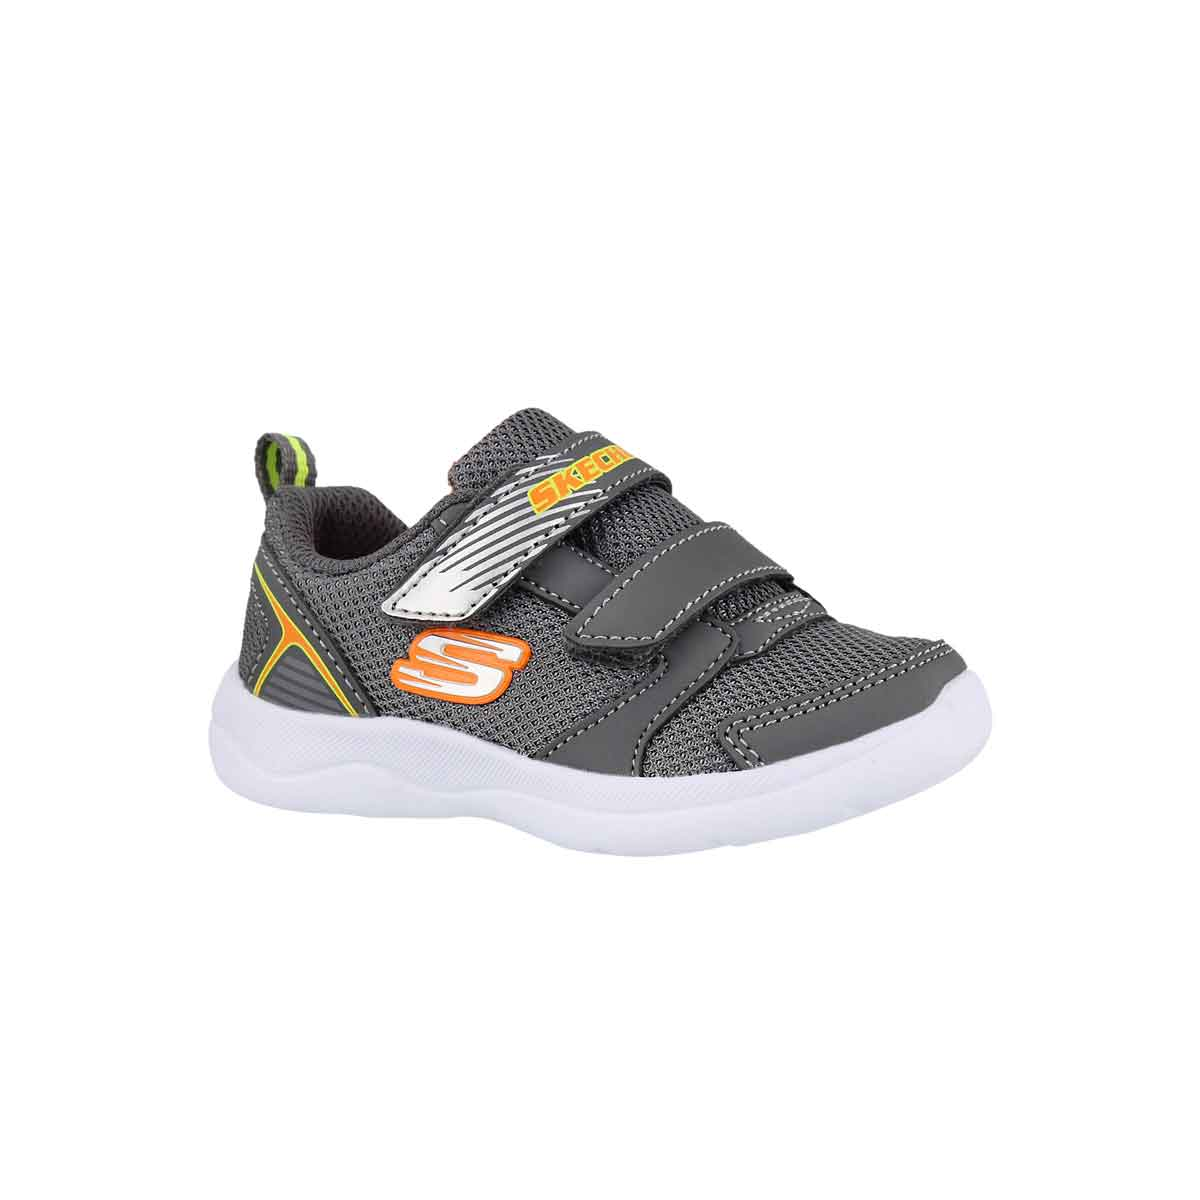 Infants' SKECH-STEPZ 2.0 char/orng sneakers